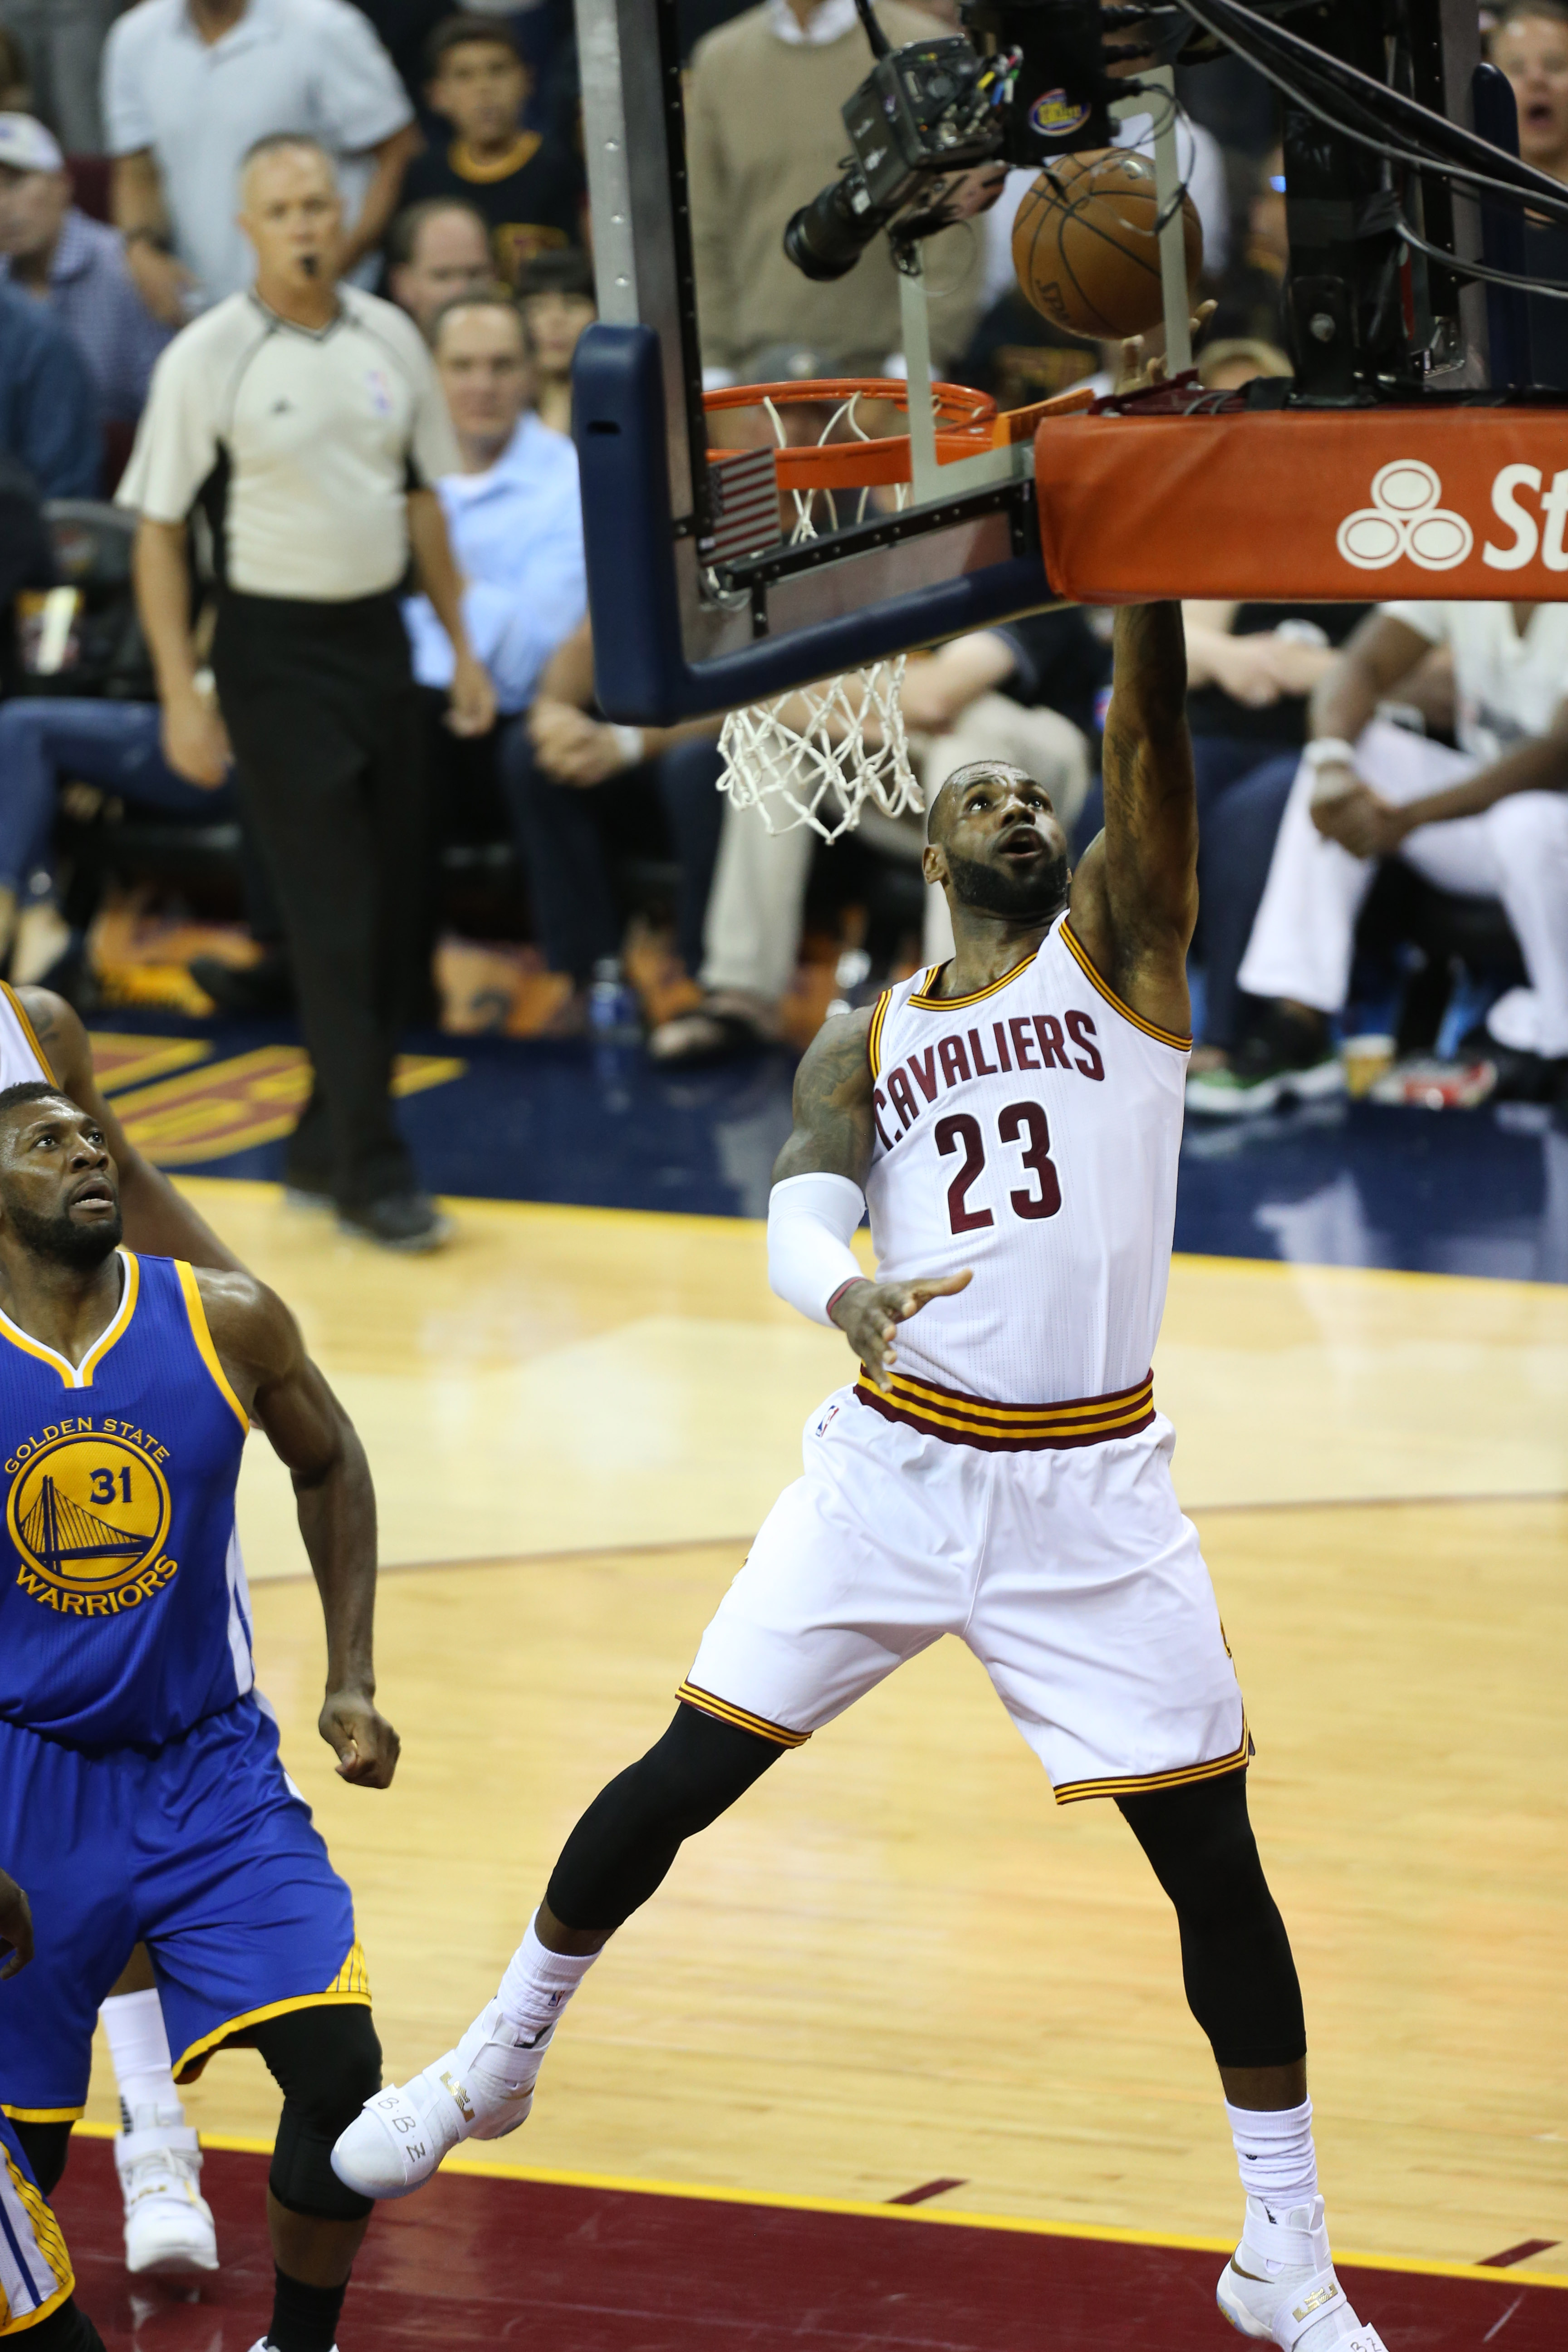 CLEVELAND, OH - JUNE 16: LeBron James #23 of the Cleveland Cavaliers goes for the lay up against the Golden State Warriors during Game Six of the 2016 NBA Finals on June 16, 2016 at Quicken Loans Arena in Cleveland, Ohio. (Photo by Joe Murphy/NBAE via Get